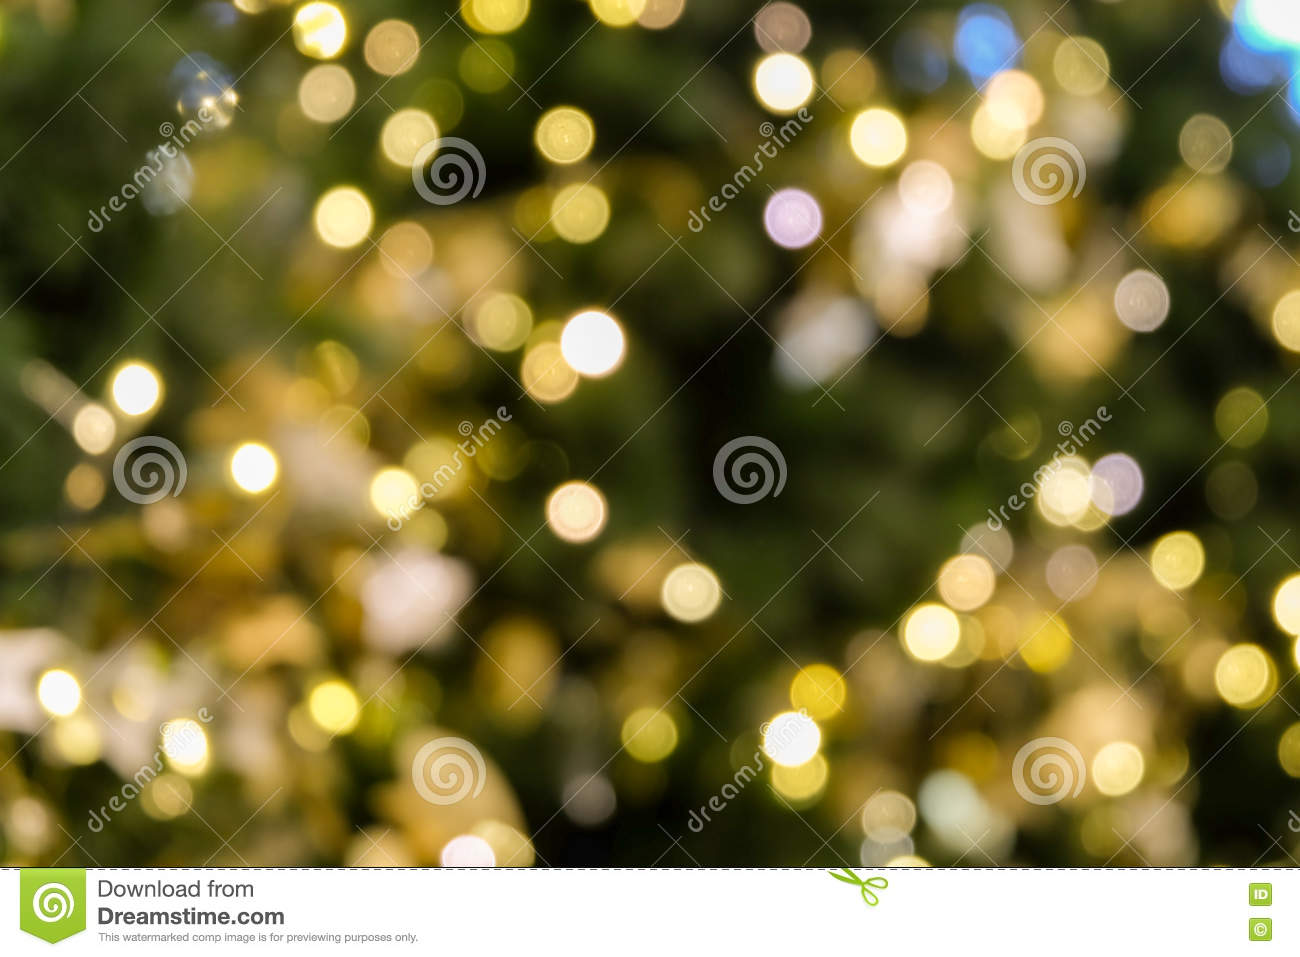 Christmas tree bokeh light in green yellow golden color, holiday abstract background, blur defocused